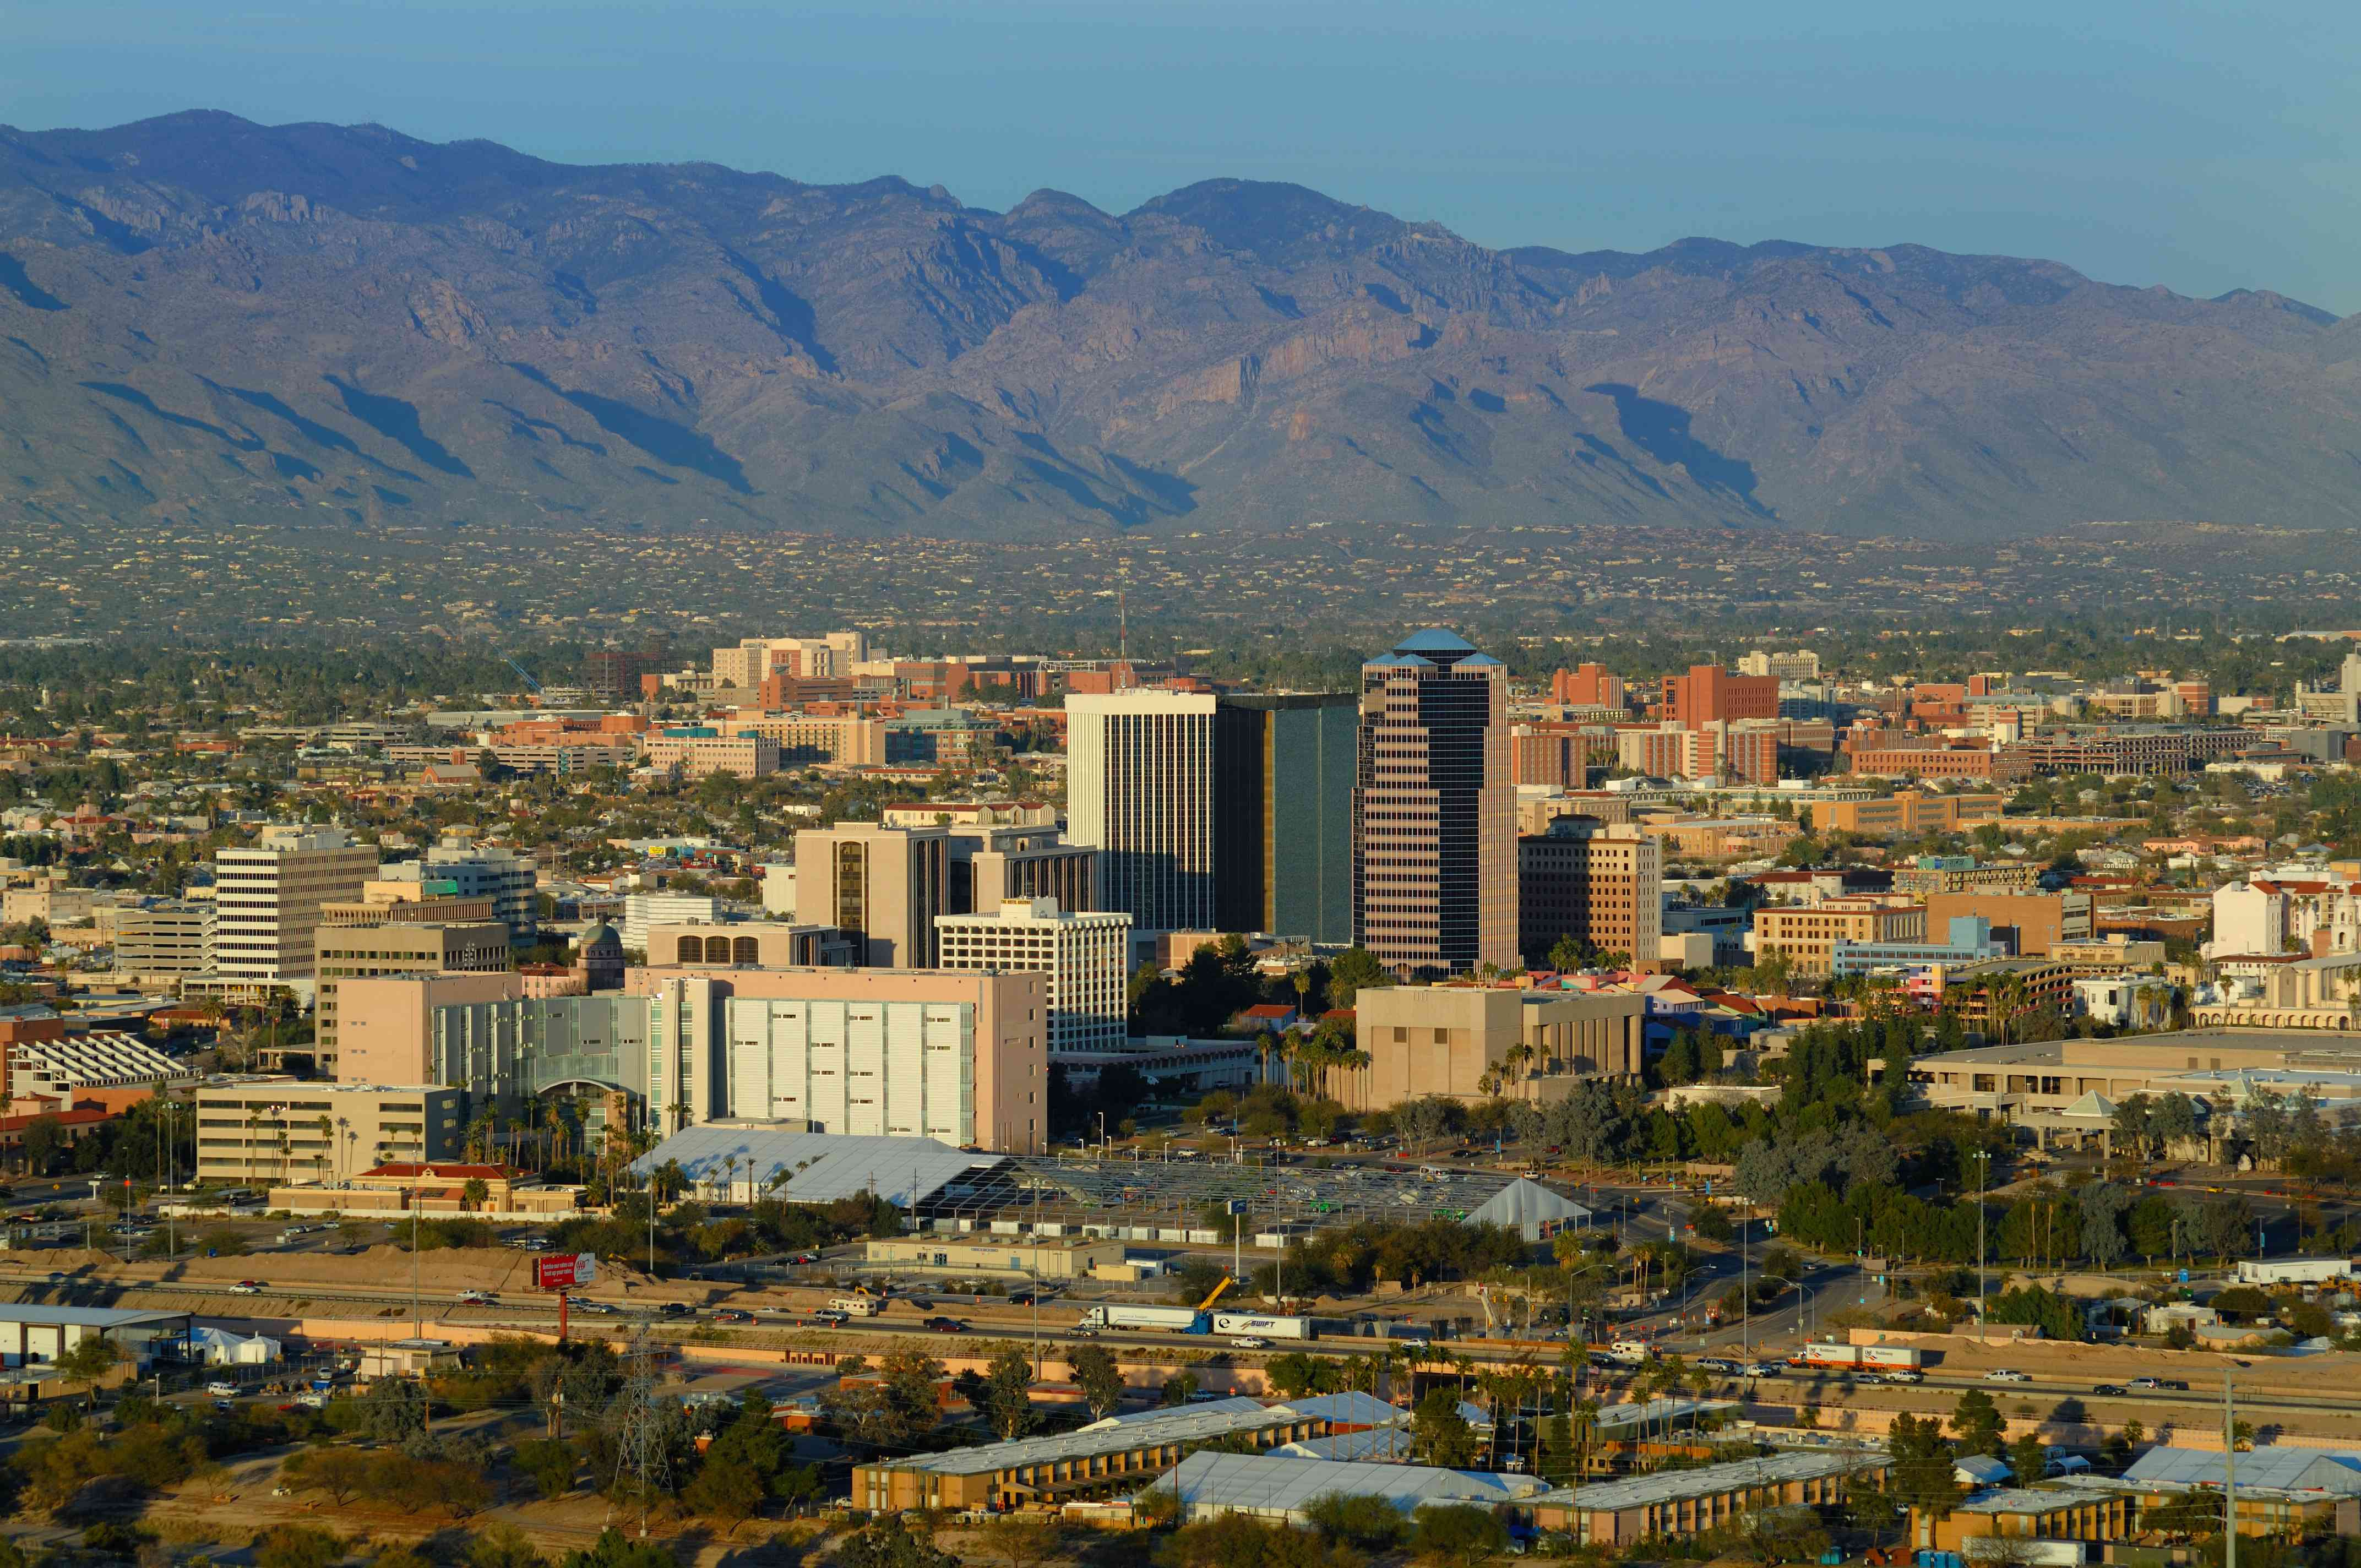 Skyline of downtown Tucson against the mountains